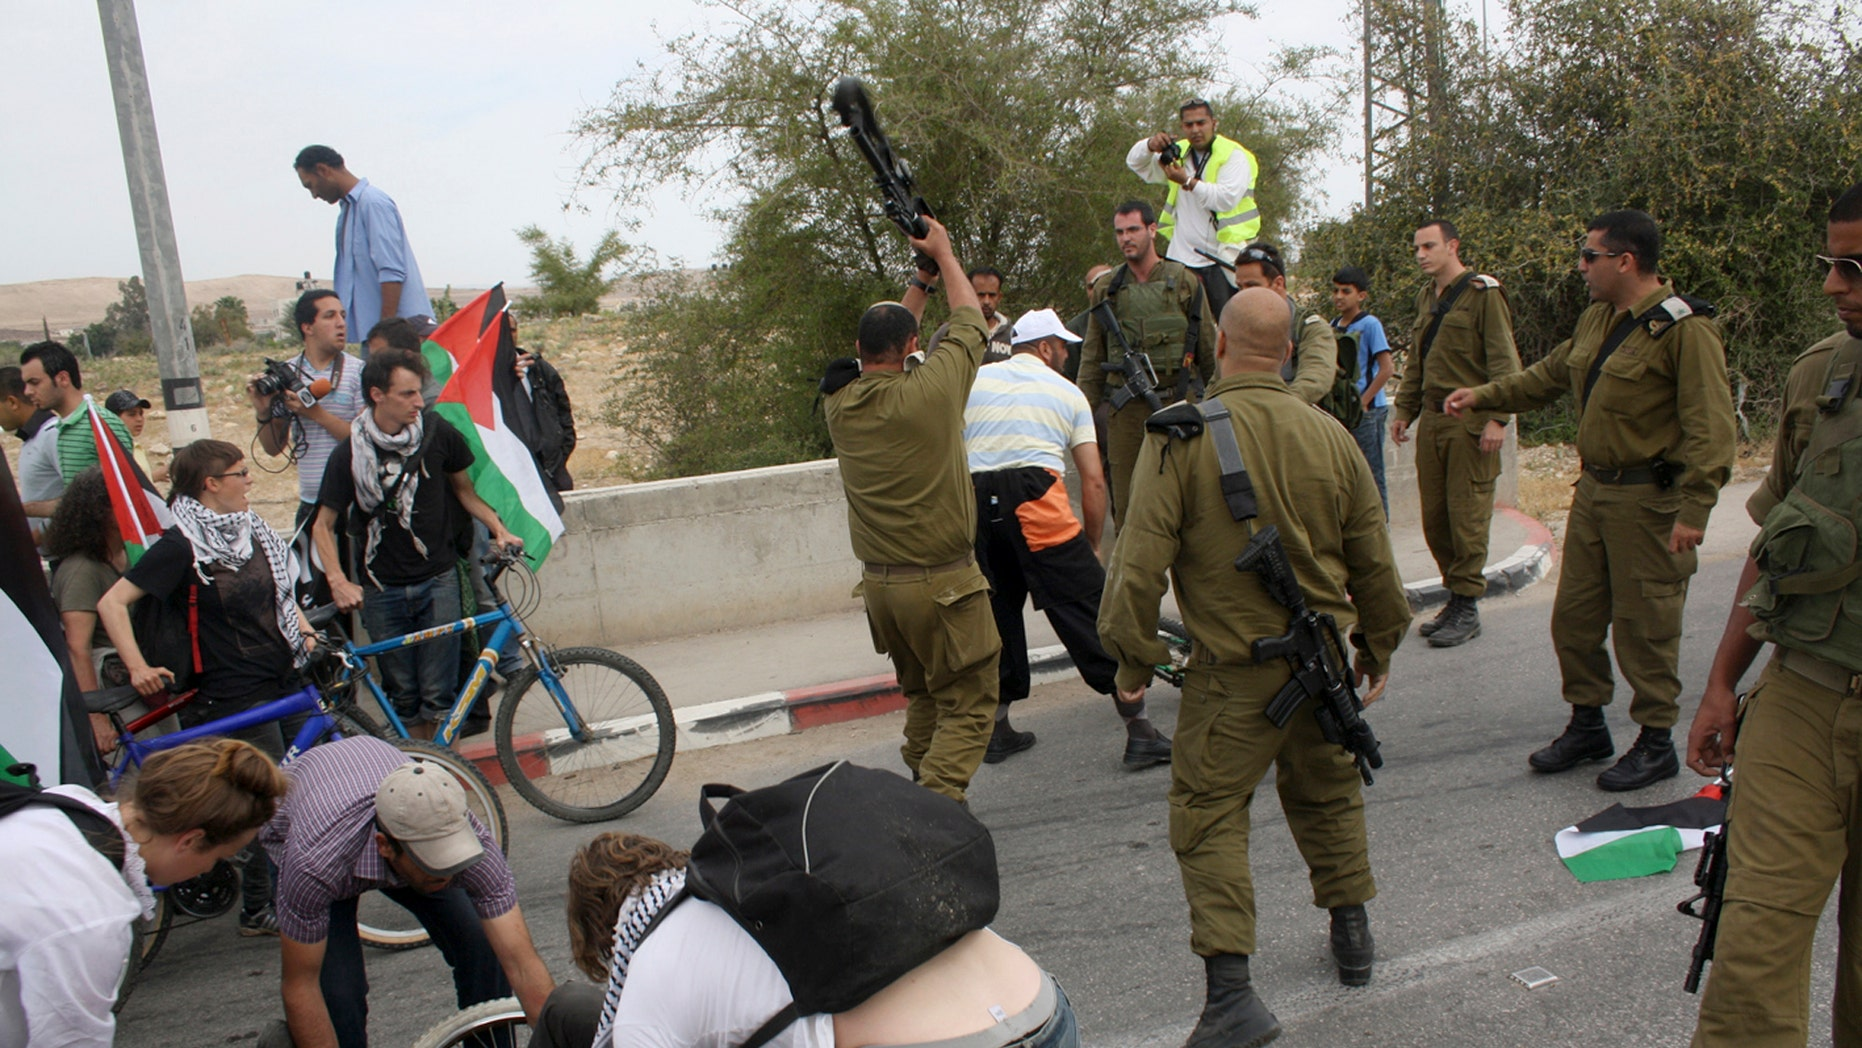 April 14:  Israeli army Lt. Col. Shalom Eisner, seen from back center, hits an unidentified activist with an M-16 rifle in the Jordan Valley.